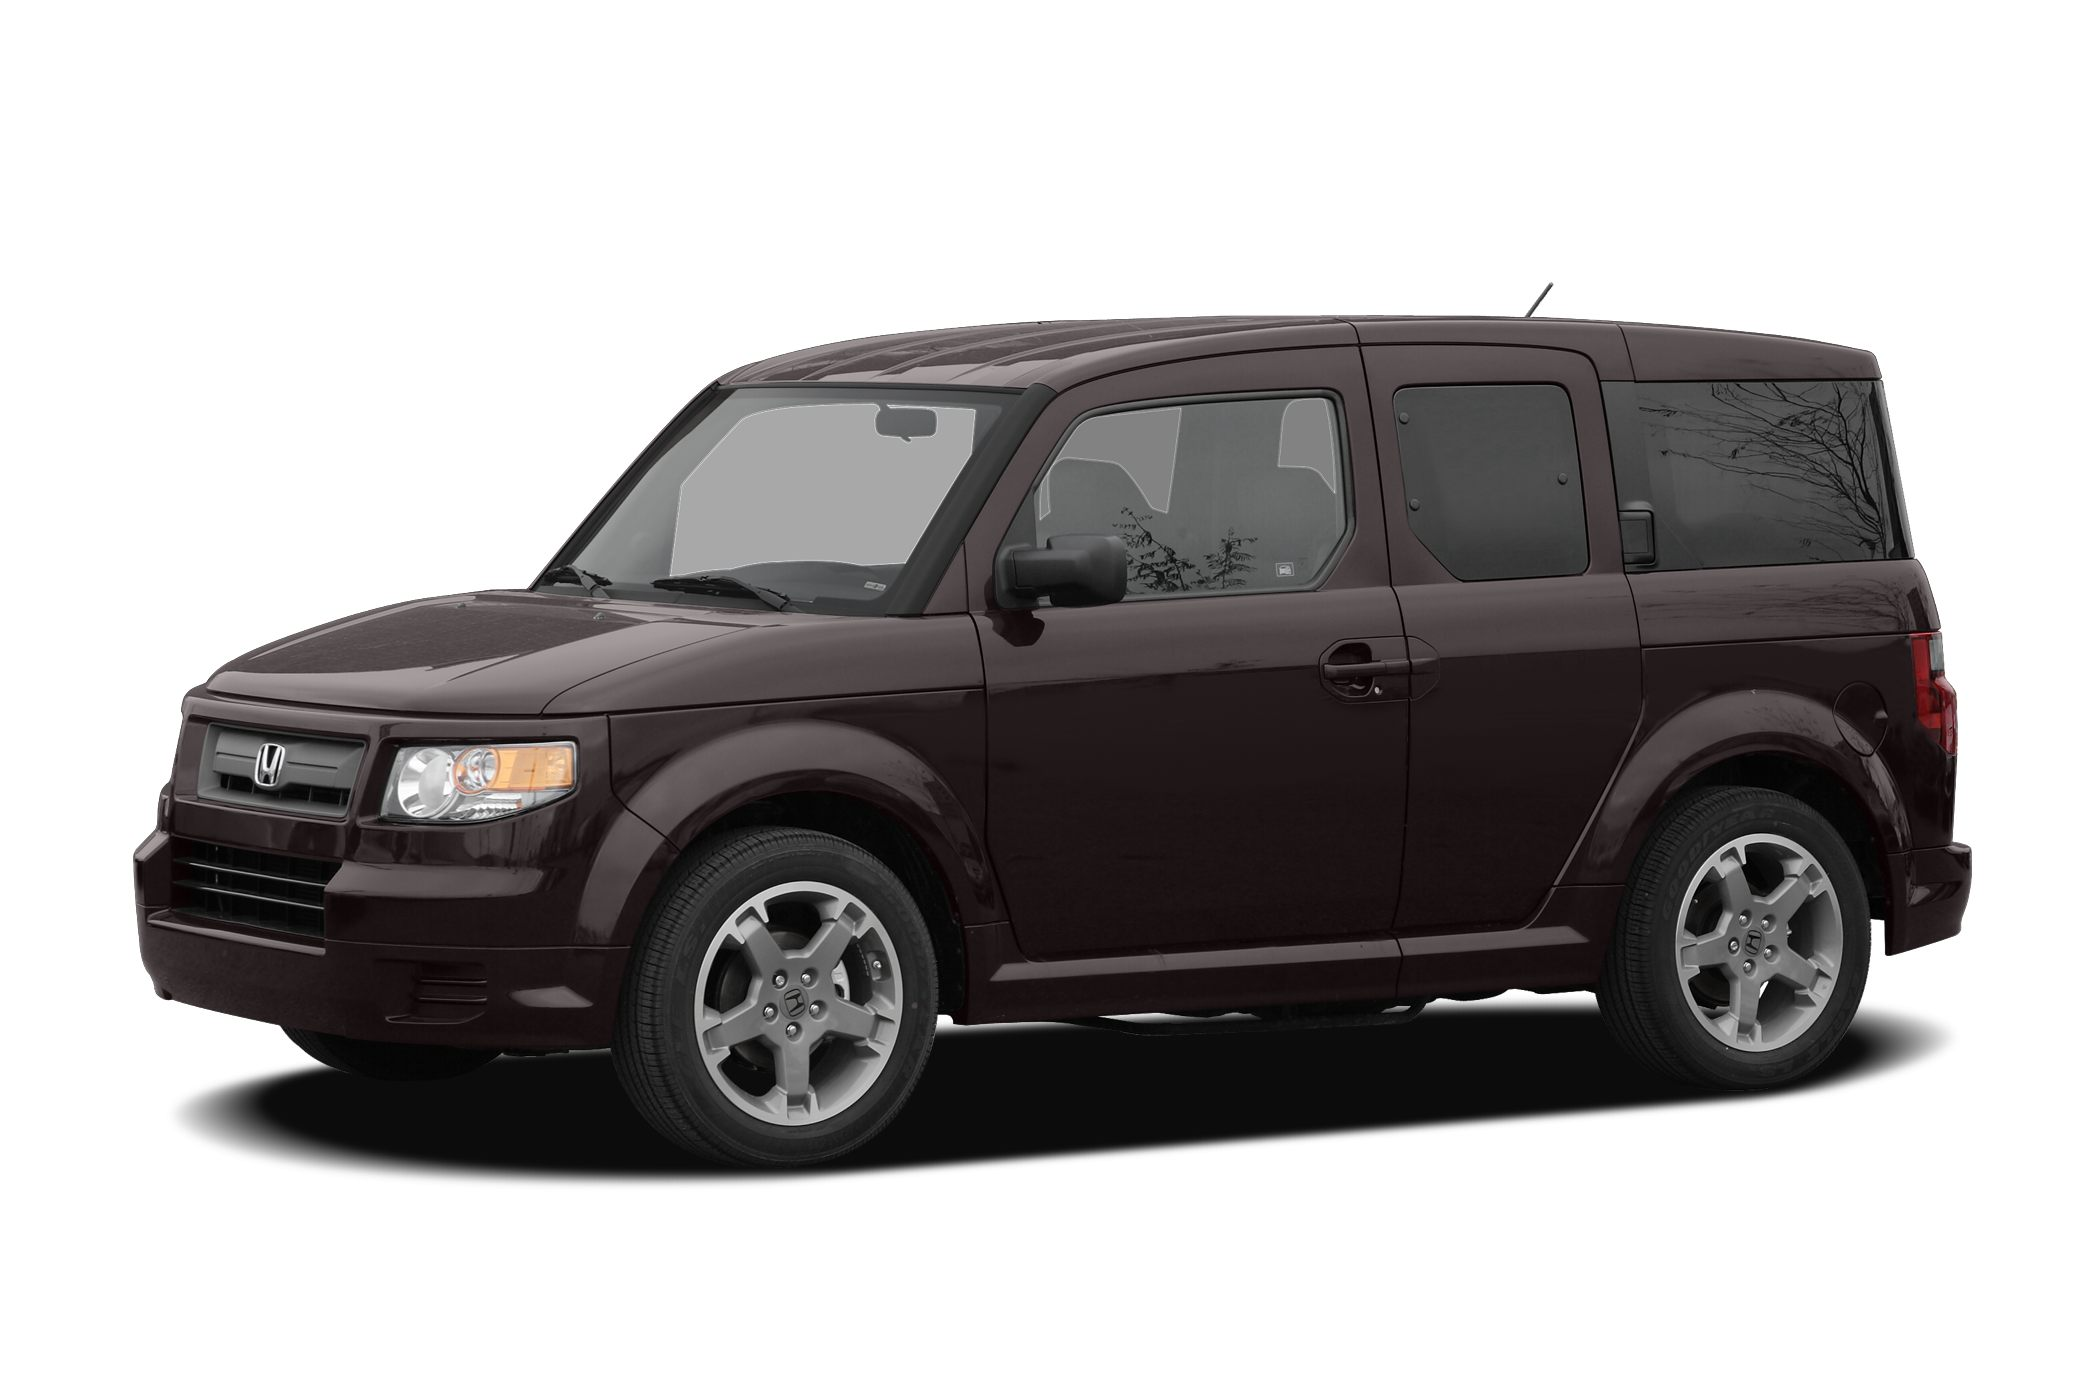 2008 Honda Element EX SUV for sale in Murphy for $15,000 with 72,145 miles